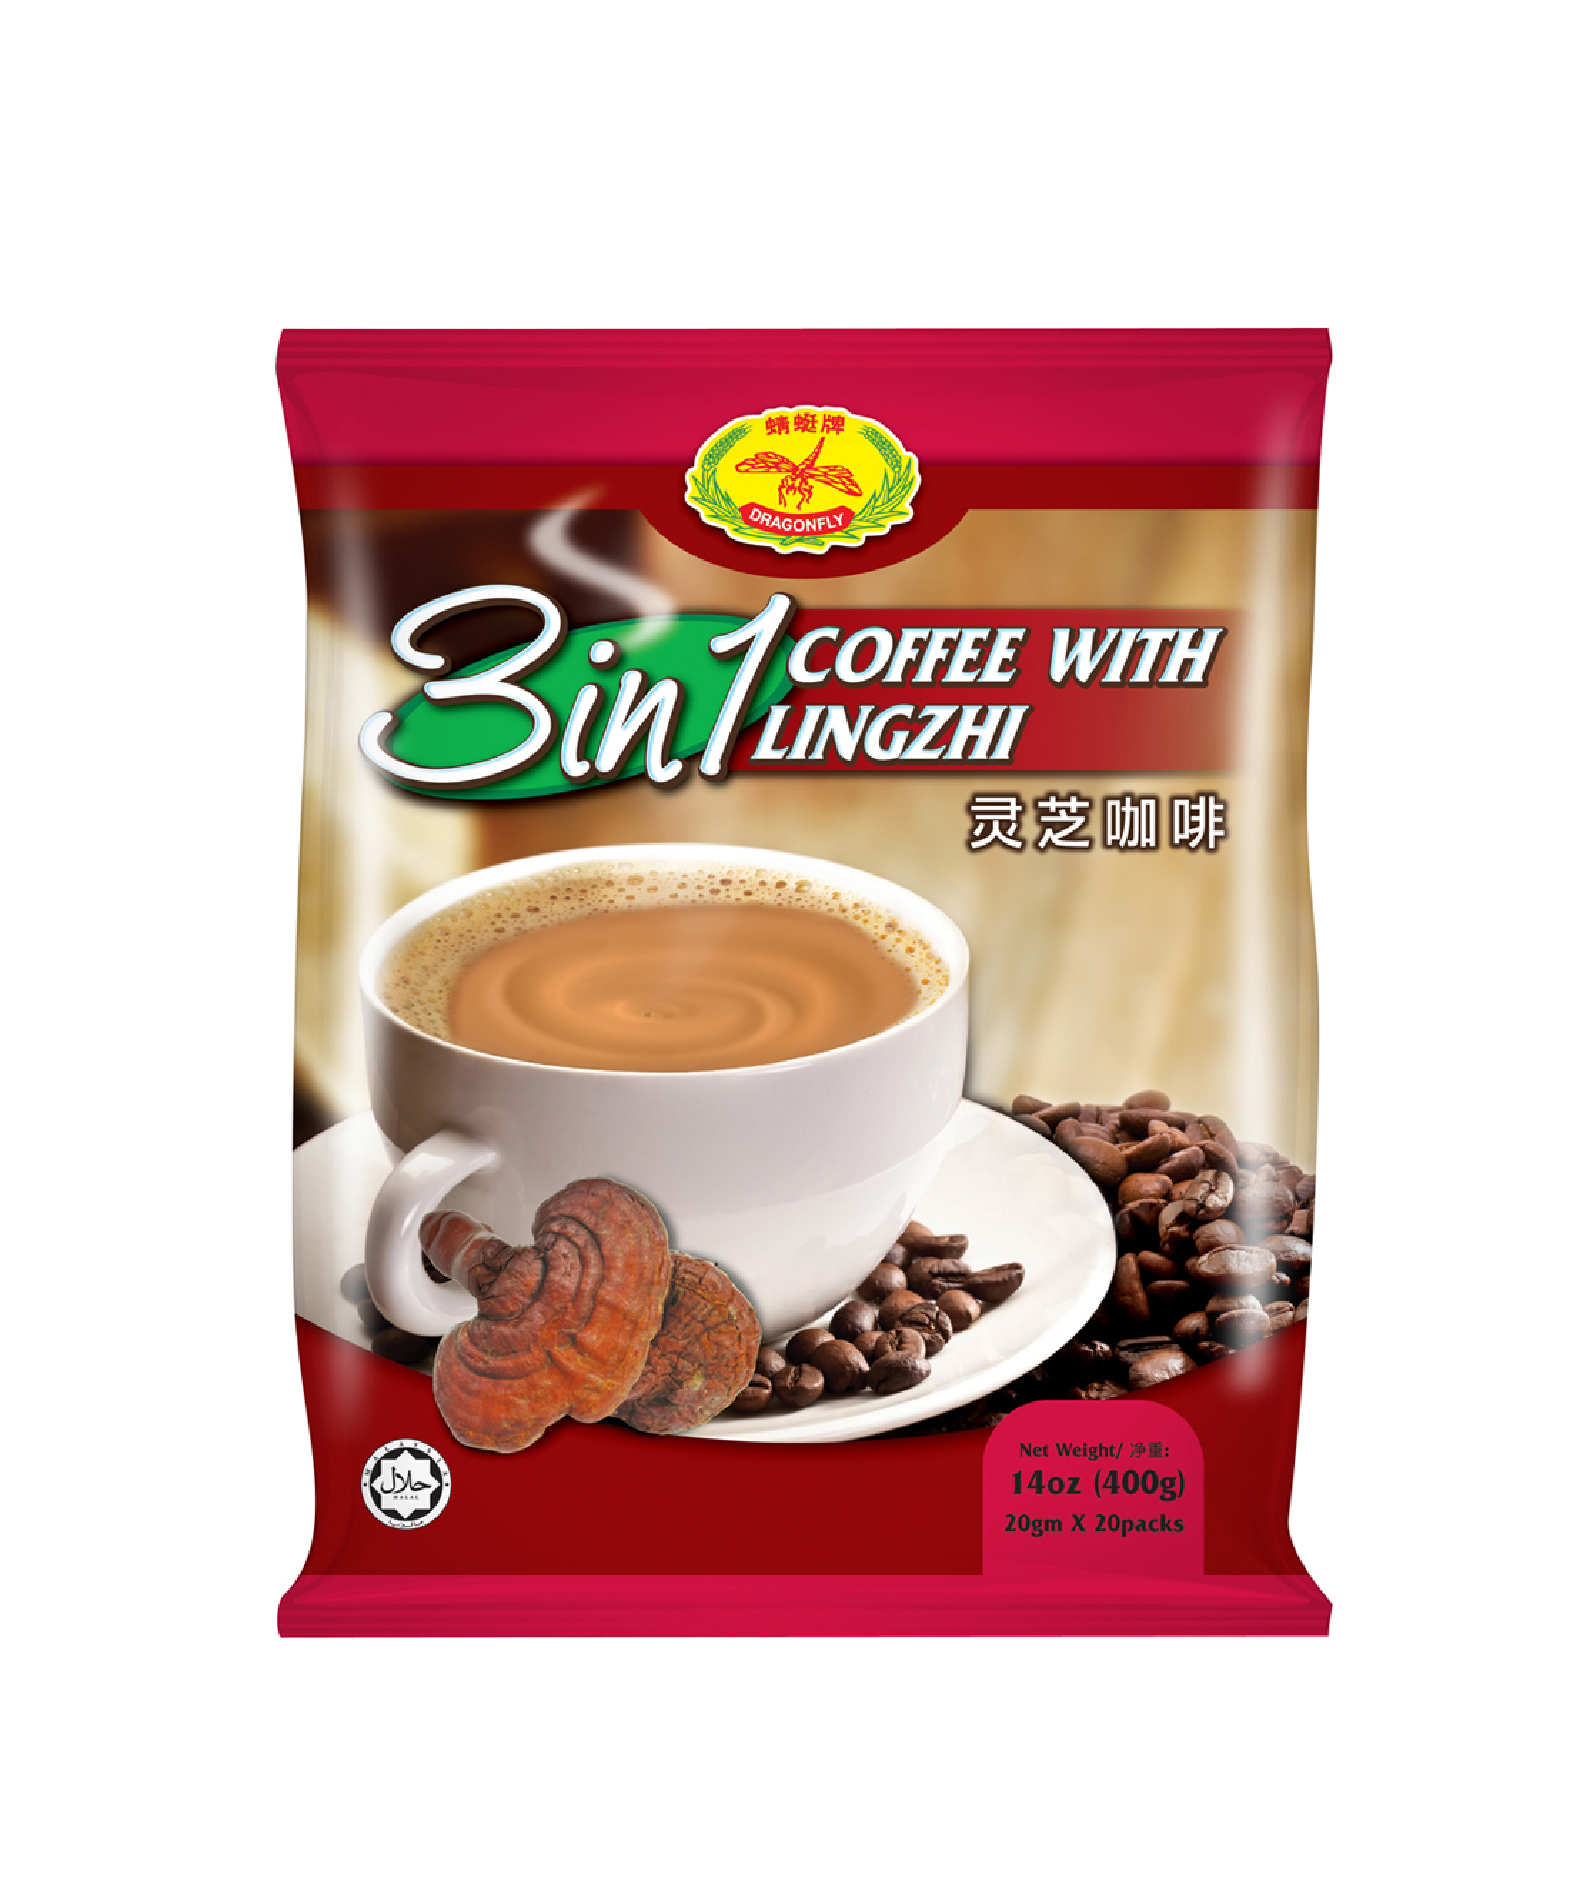 3in1 coffee lingzhi